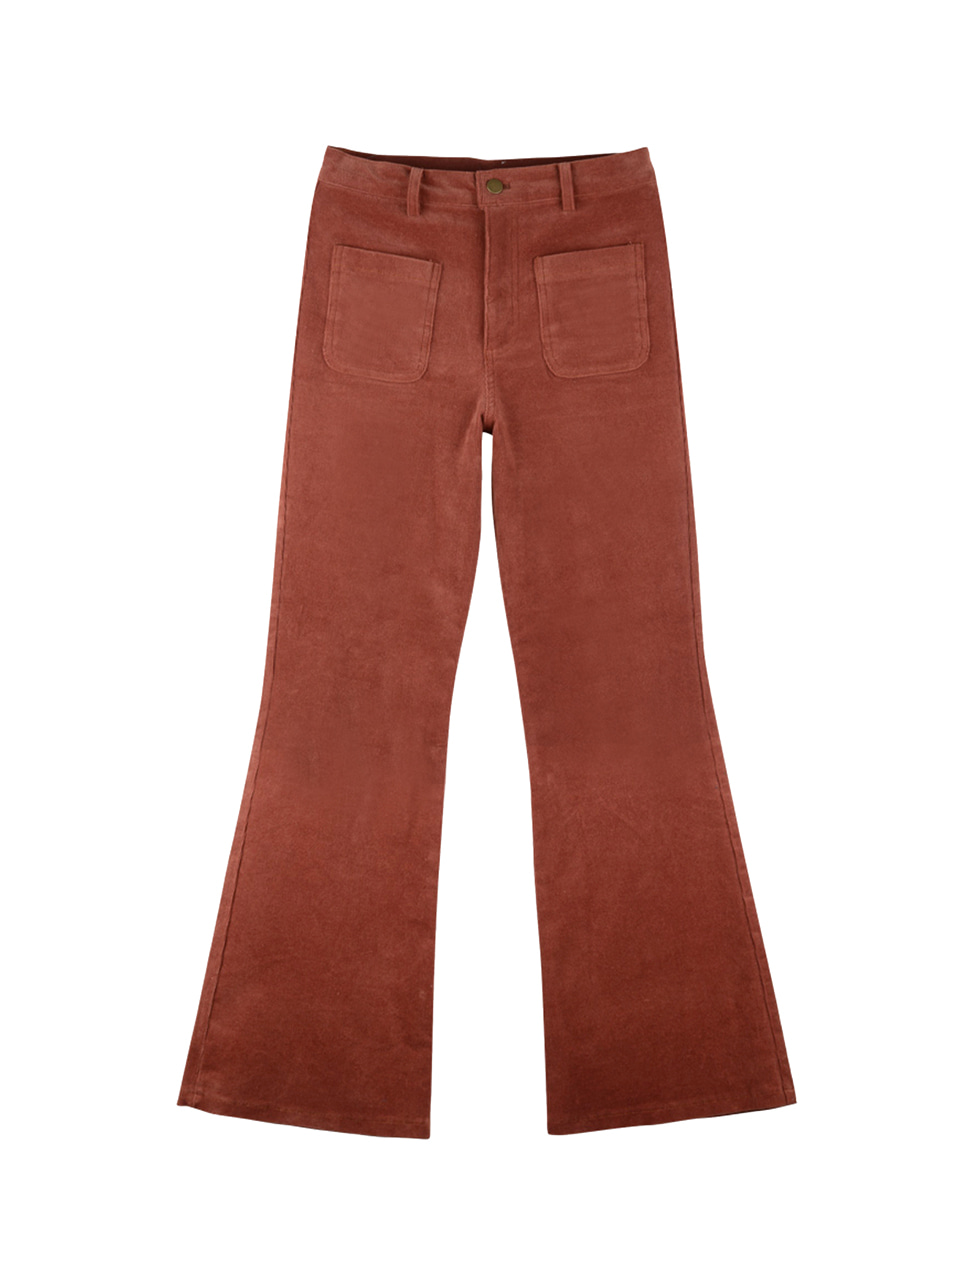 Corduroy pocket pants_pink brown